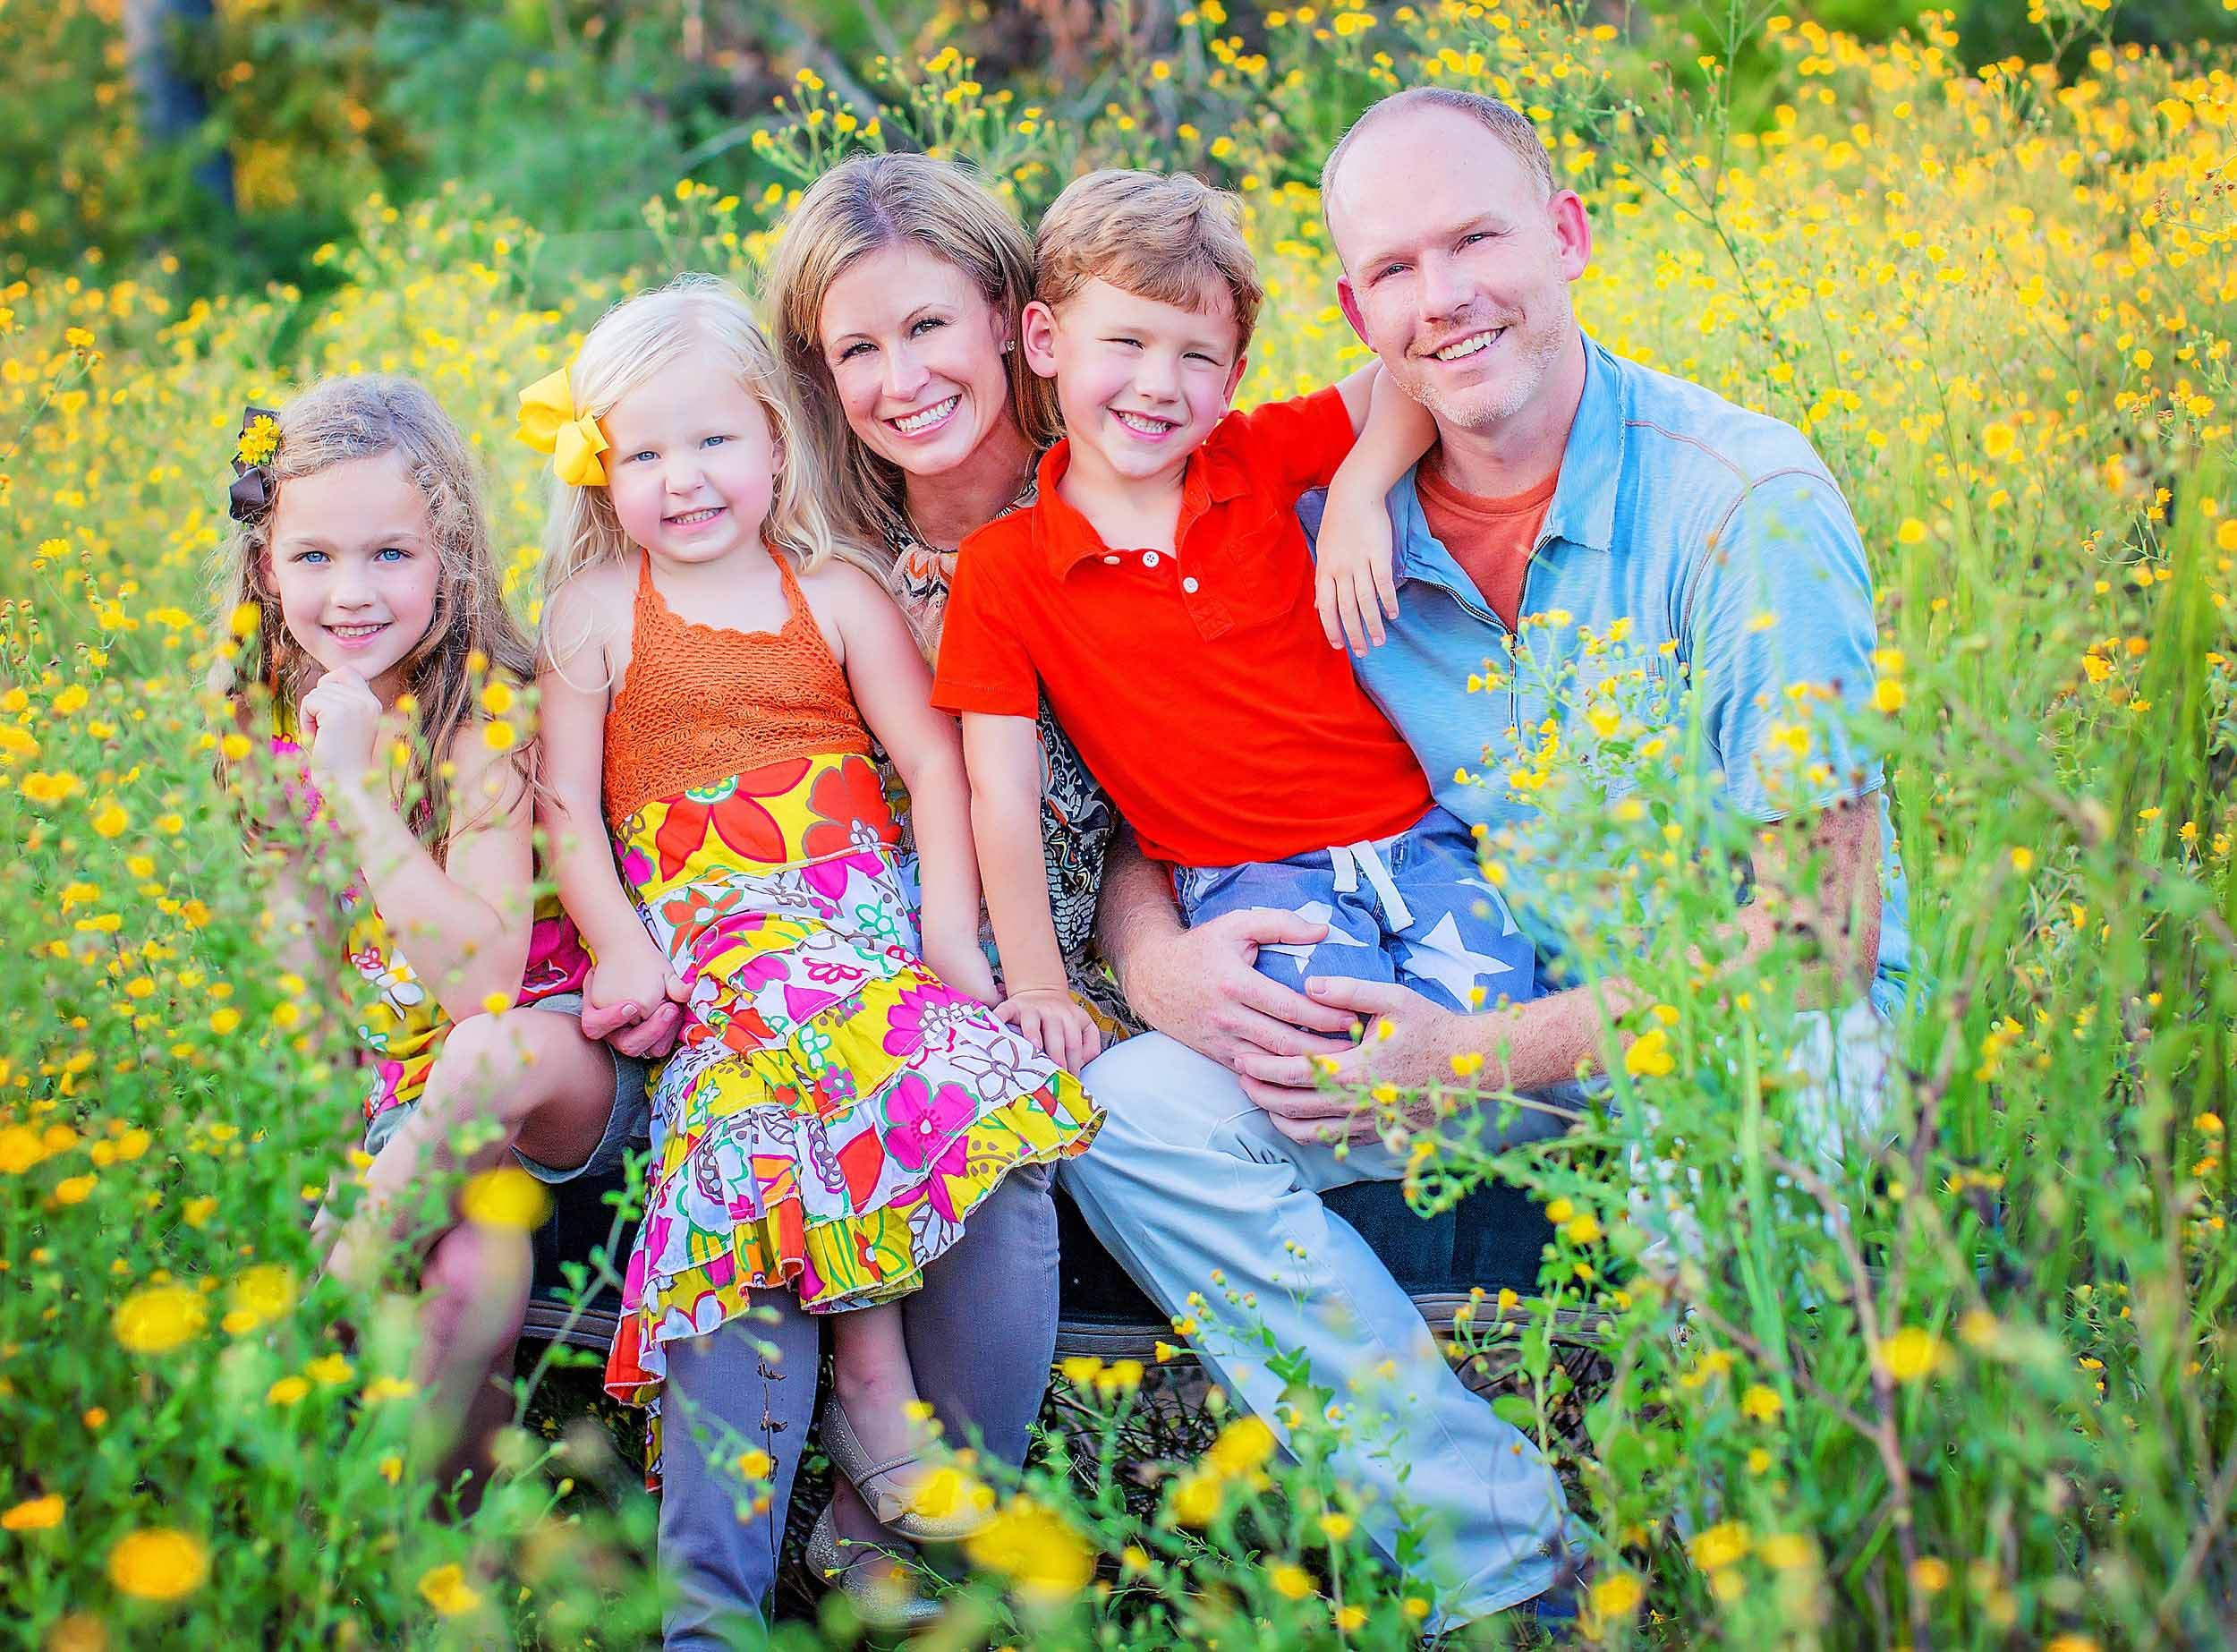 Family photograph in wildflowers in The Woodlands, Texas by spryART photography